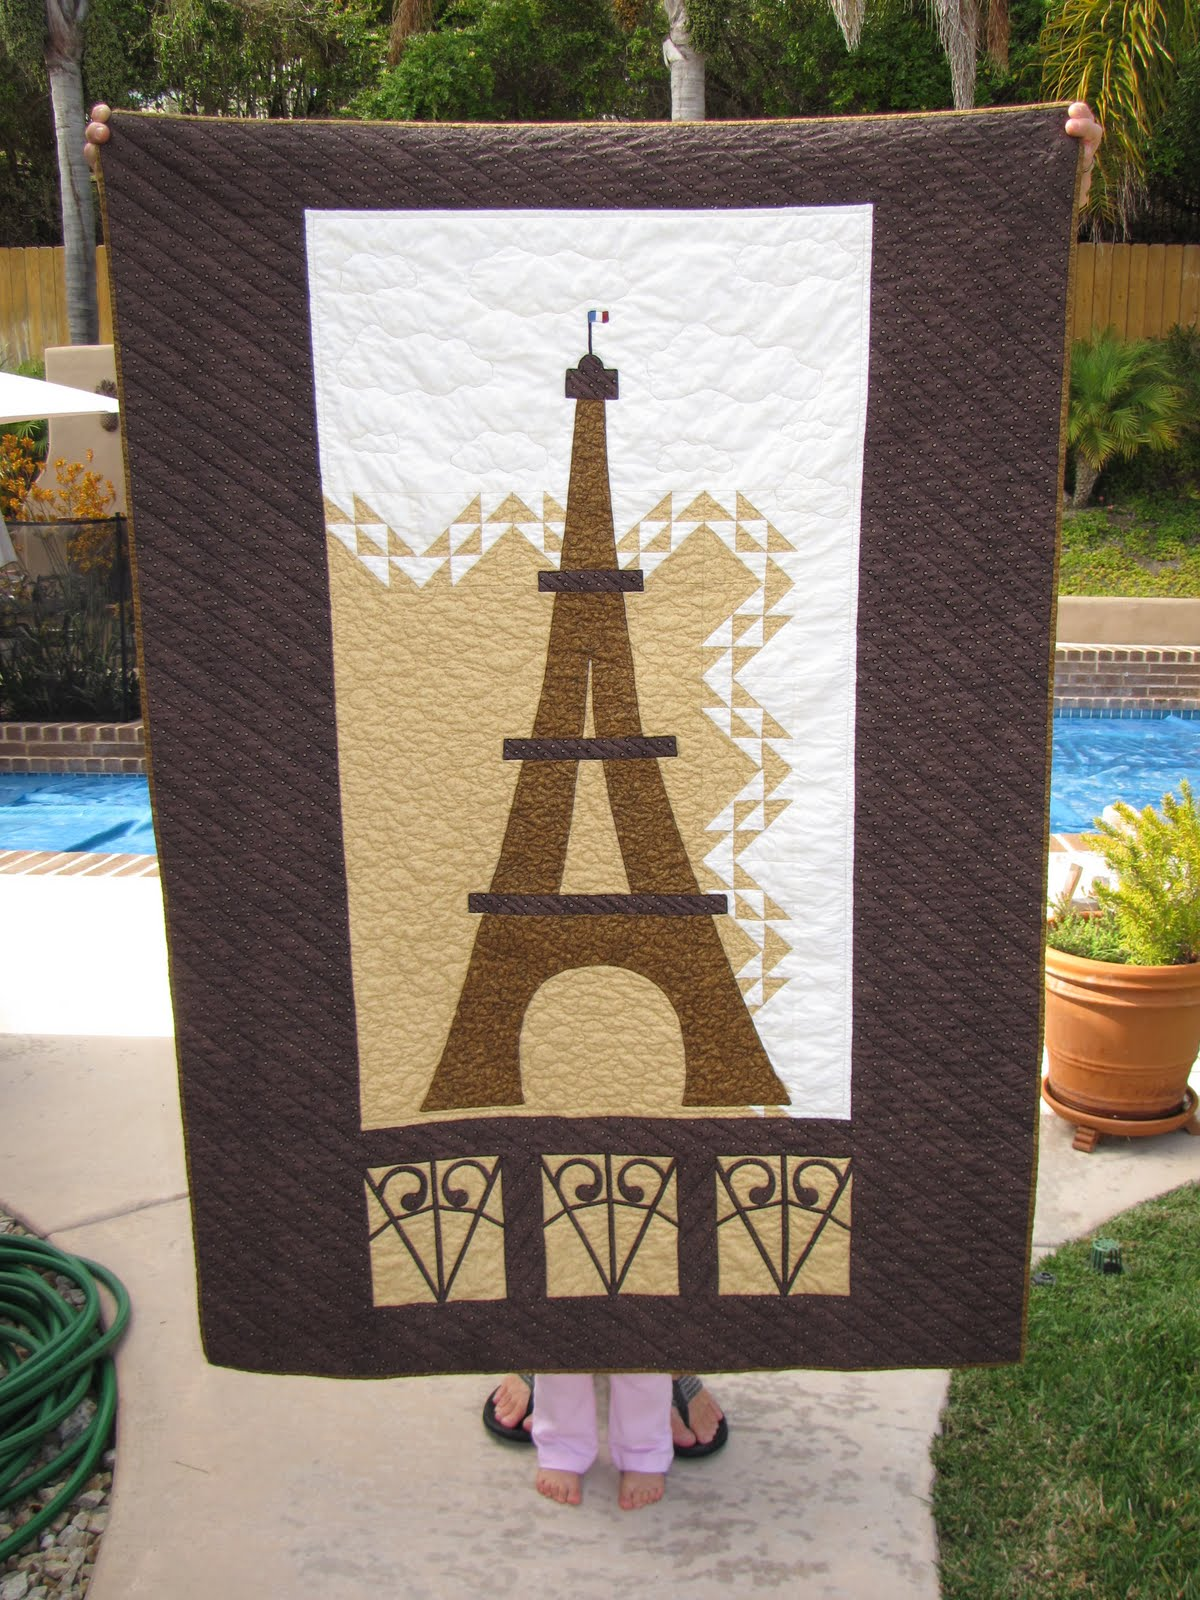 Eiffel Tower Quilt Pattern http://hrhgigi.blogspot.com/2010/09/eiffel-tower-for-my-dad.html